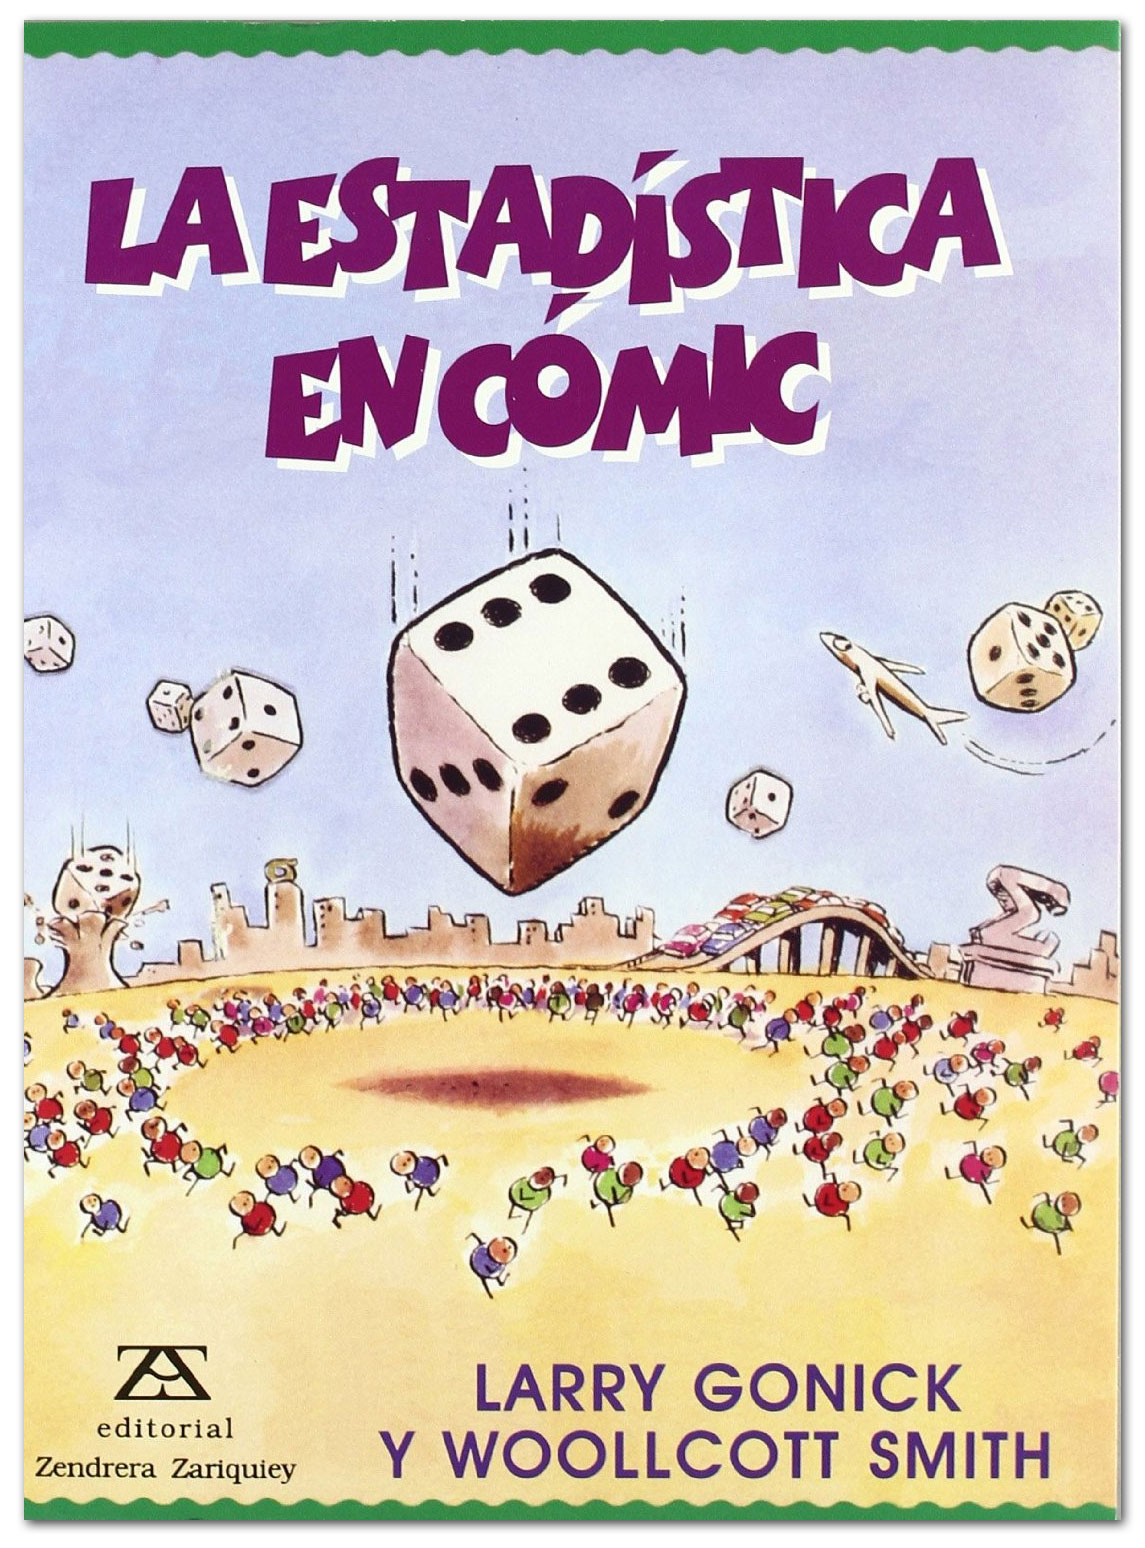 La estadística en cómic - Larry Gonick y Woollcott Smith